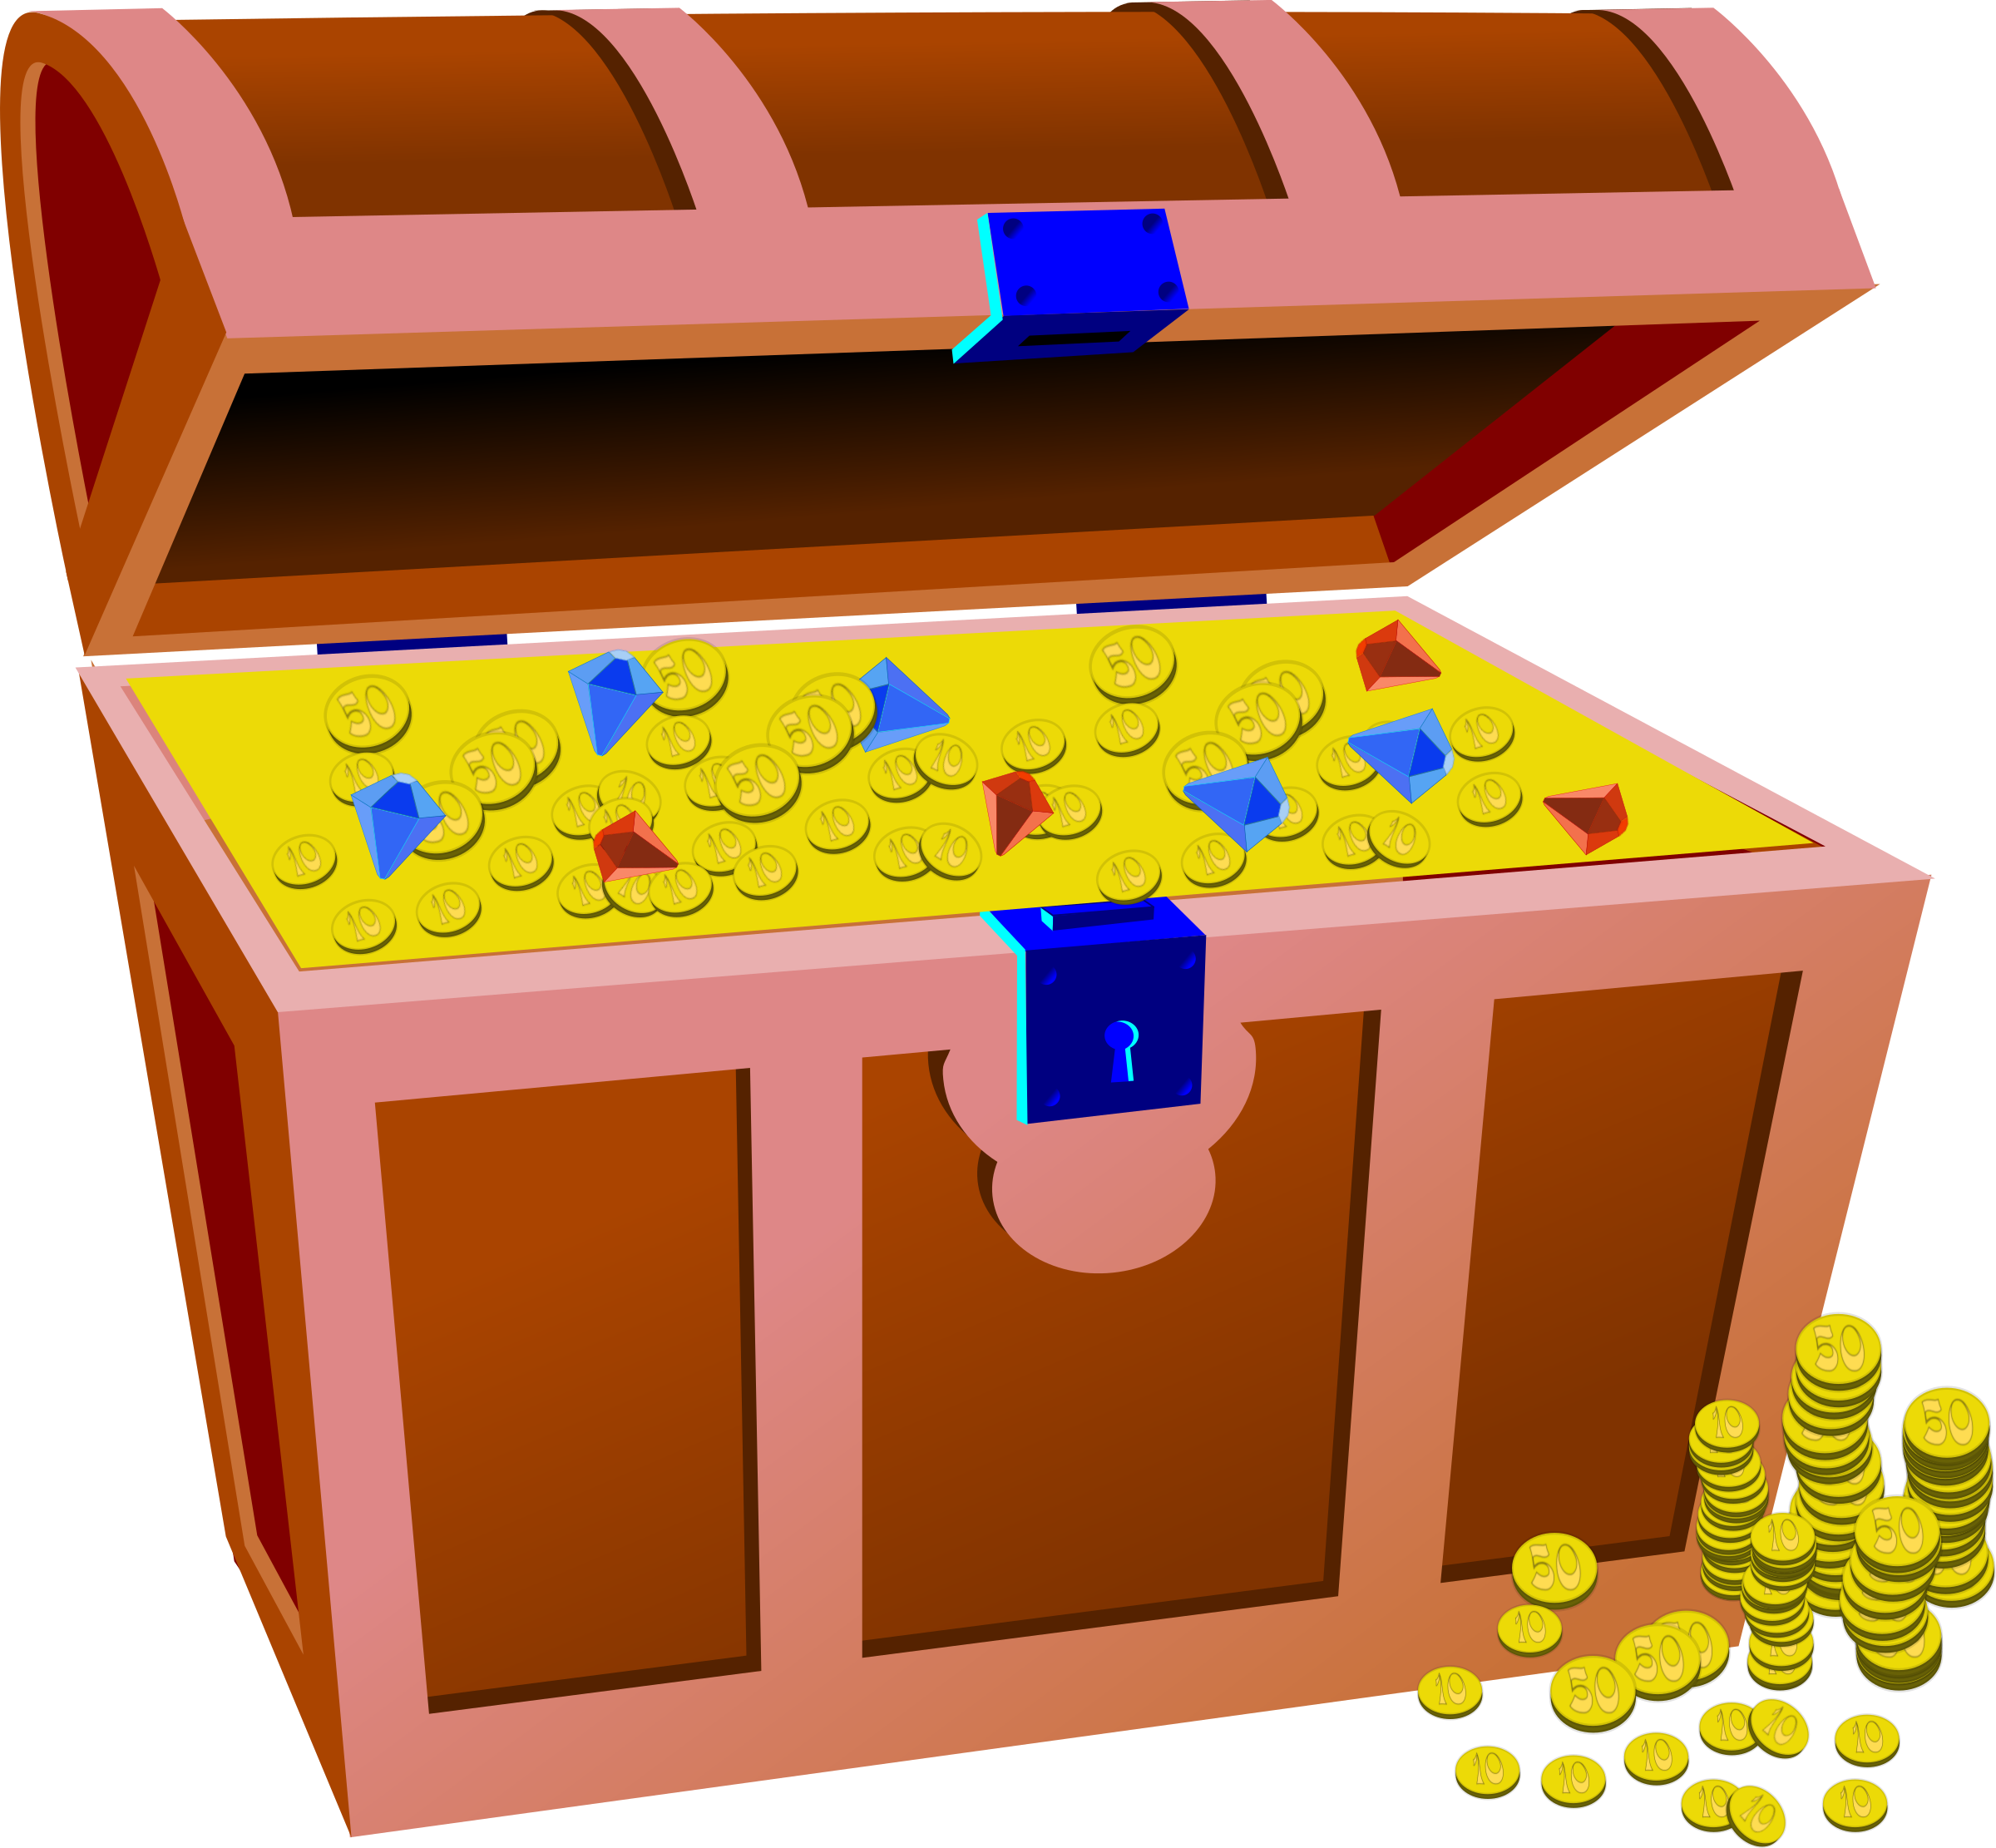 Full Treasure Chest by hextrust